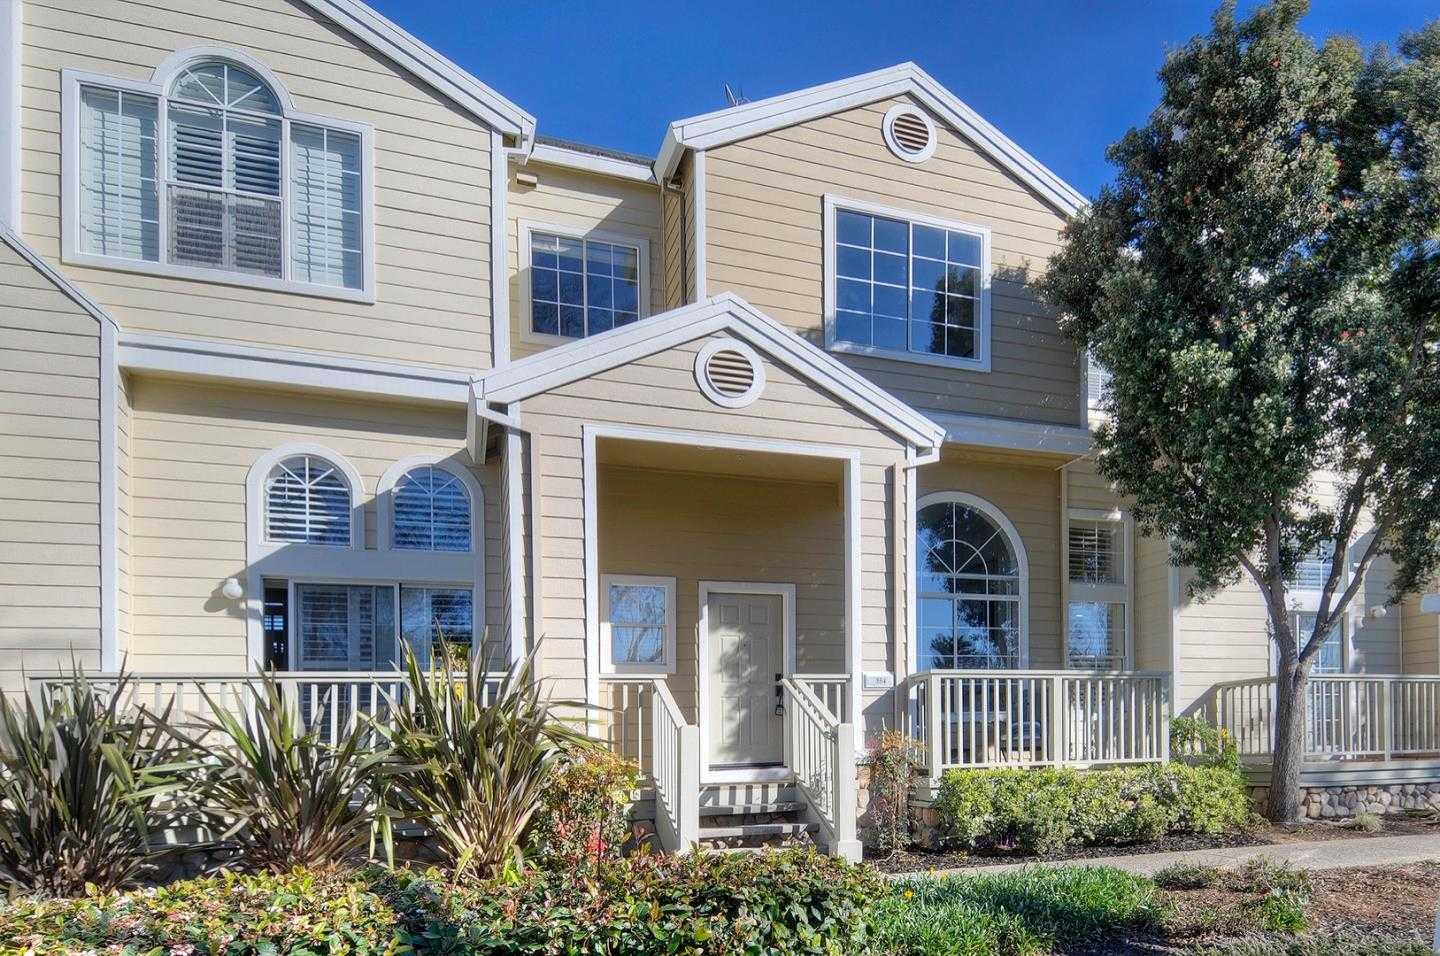 $1,398,000 - 3Br/3Ba -  for Sale in Redwood City